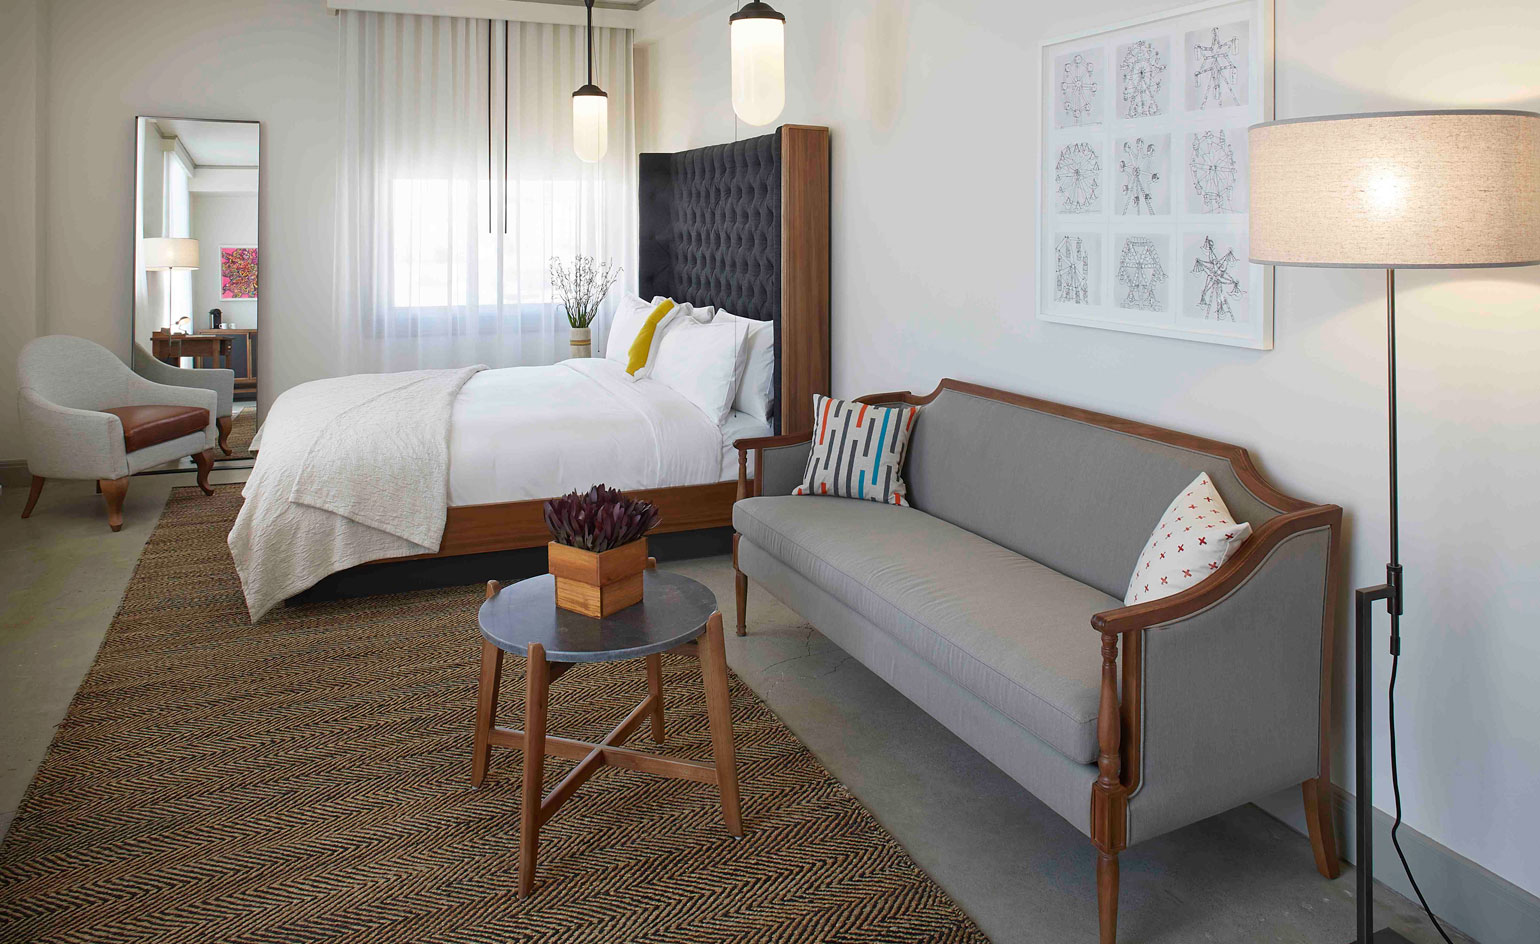 Best urban hotels 2014 by wallpaper ruartecontract blog for G design hotel